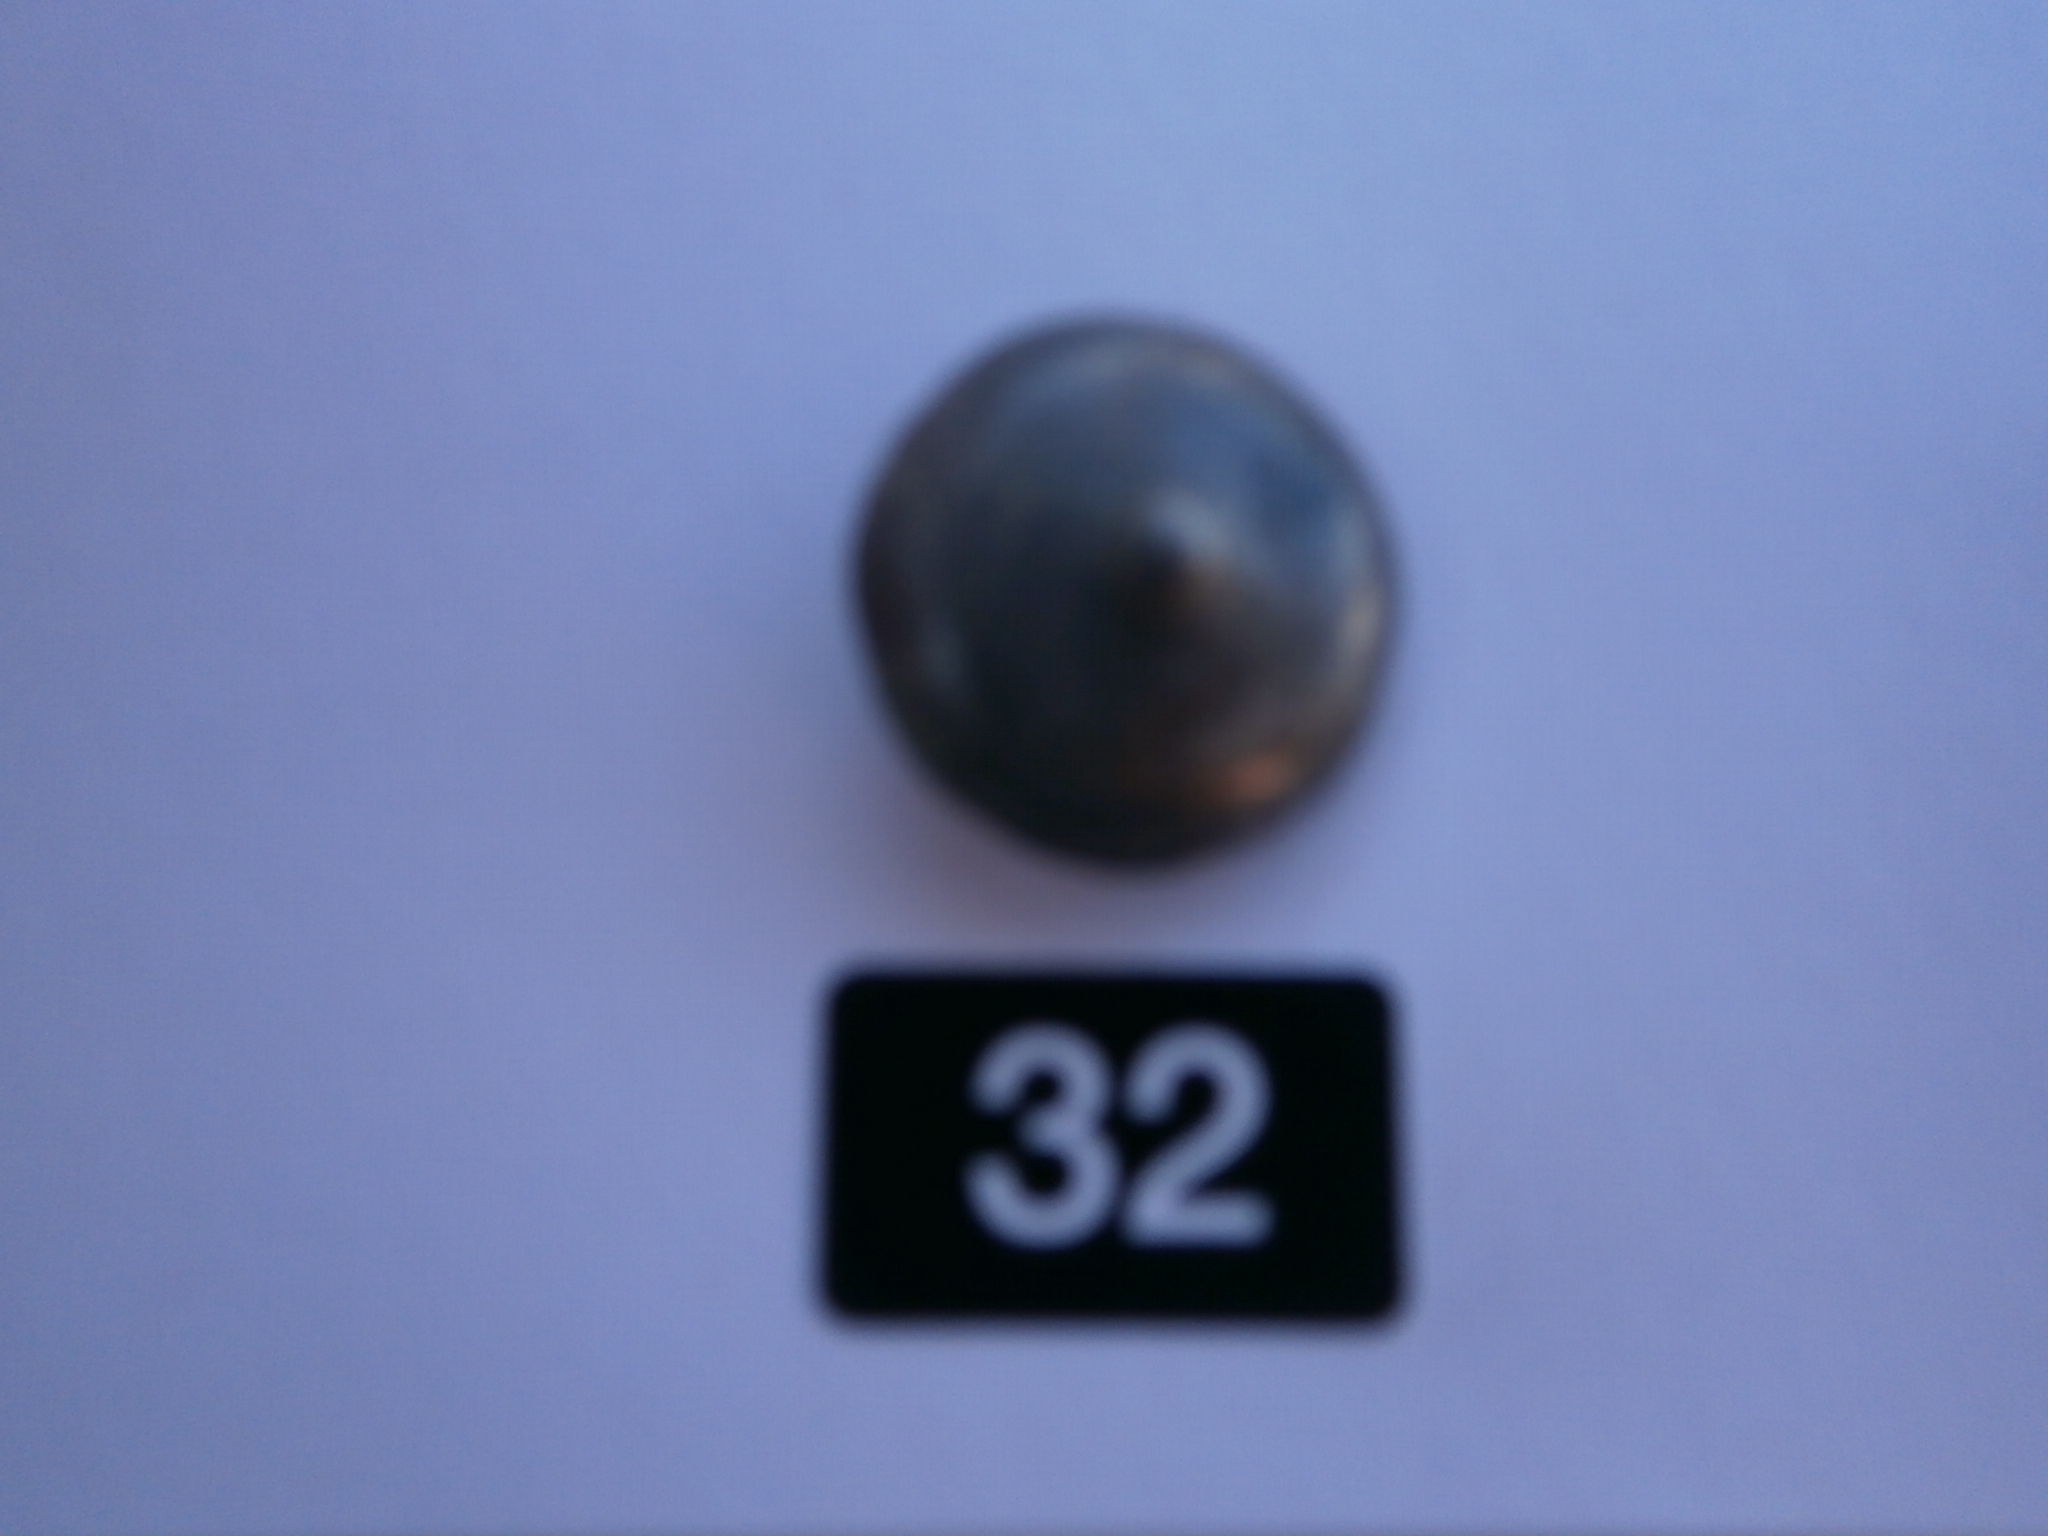 Lead alloy small button